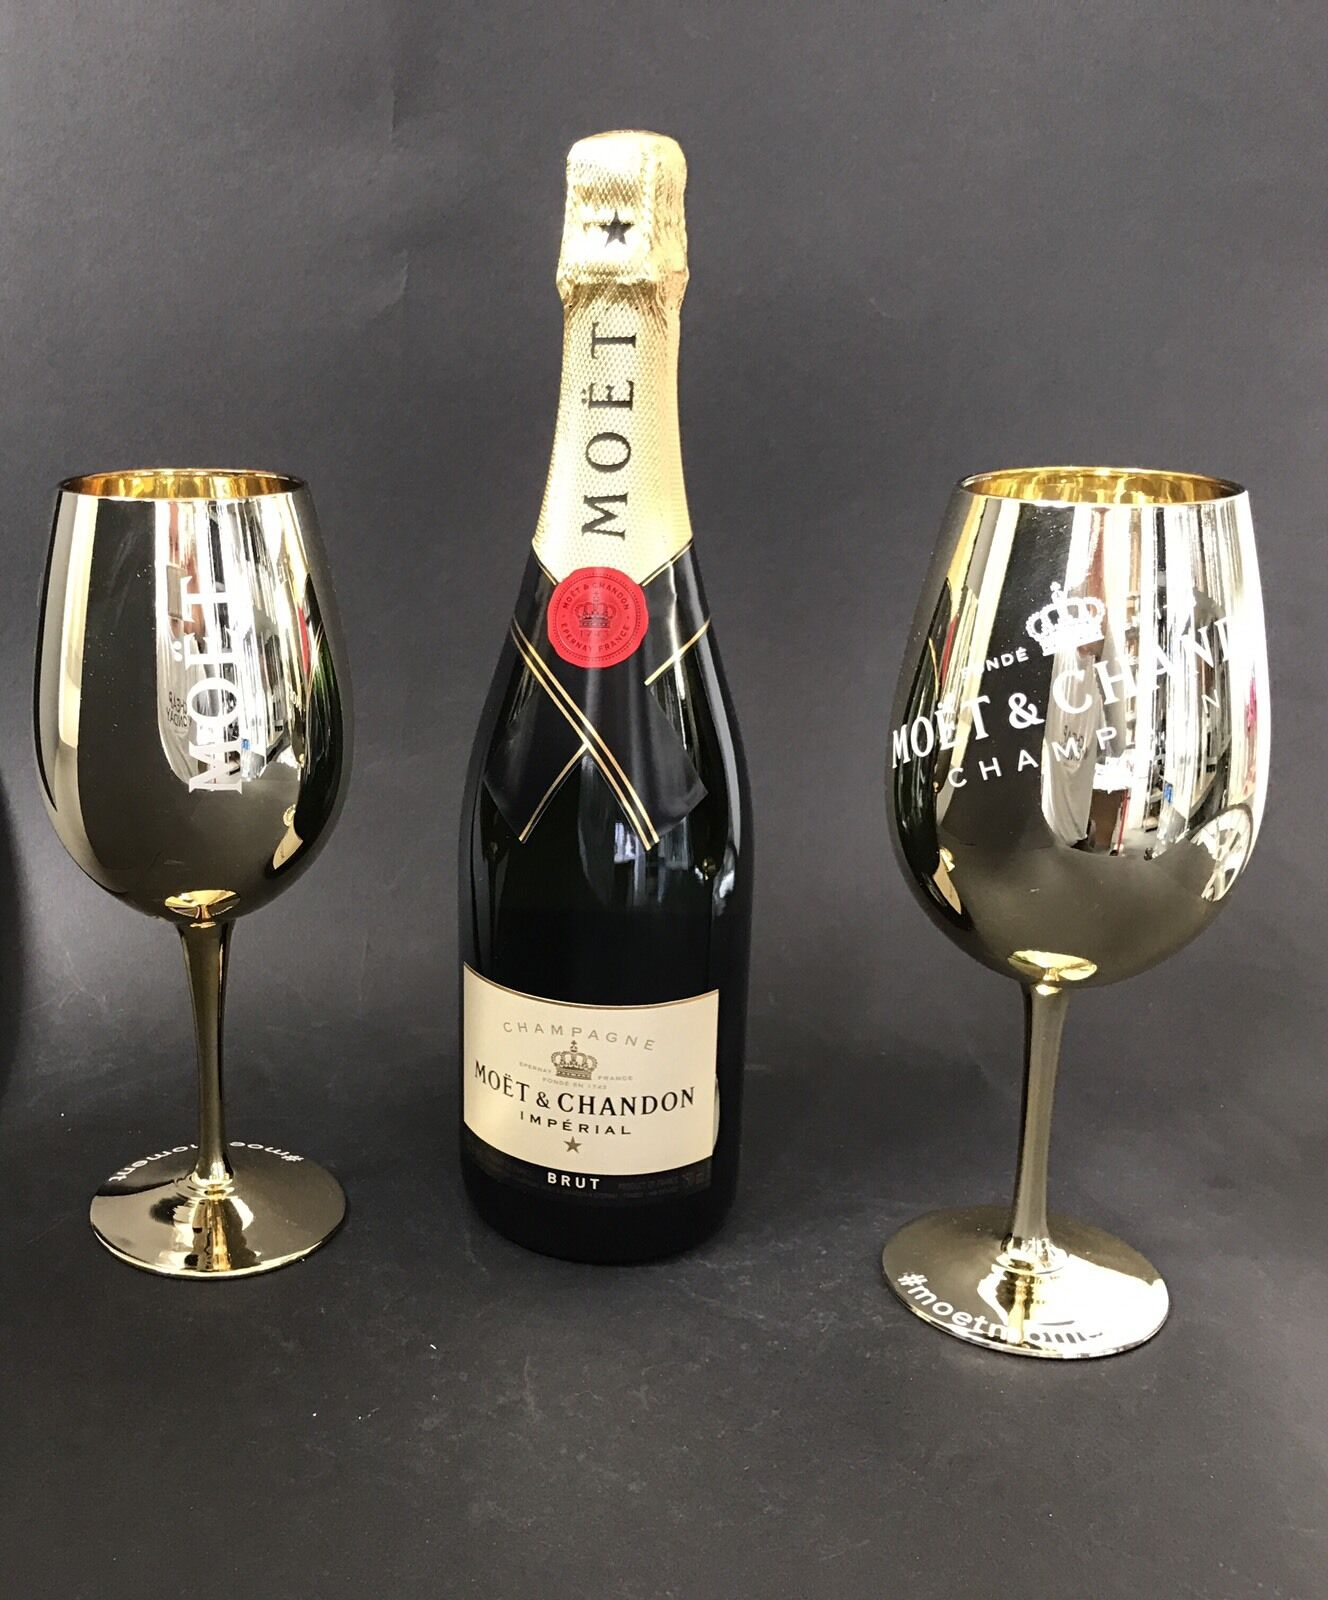 moet chandon imp rial champagner 0 75l flasche 12 vol 2 gold glas gl ser chf. Black Bedroom Furniture Sets. Home Design Ideas